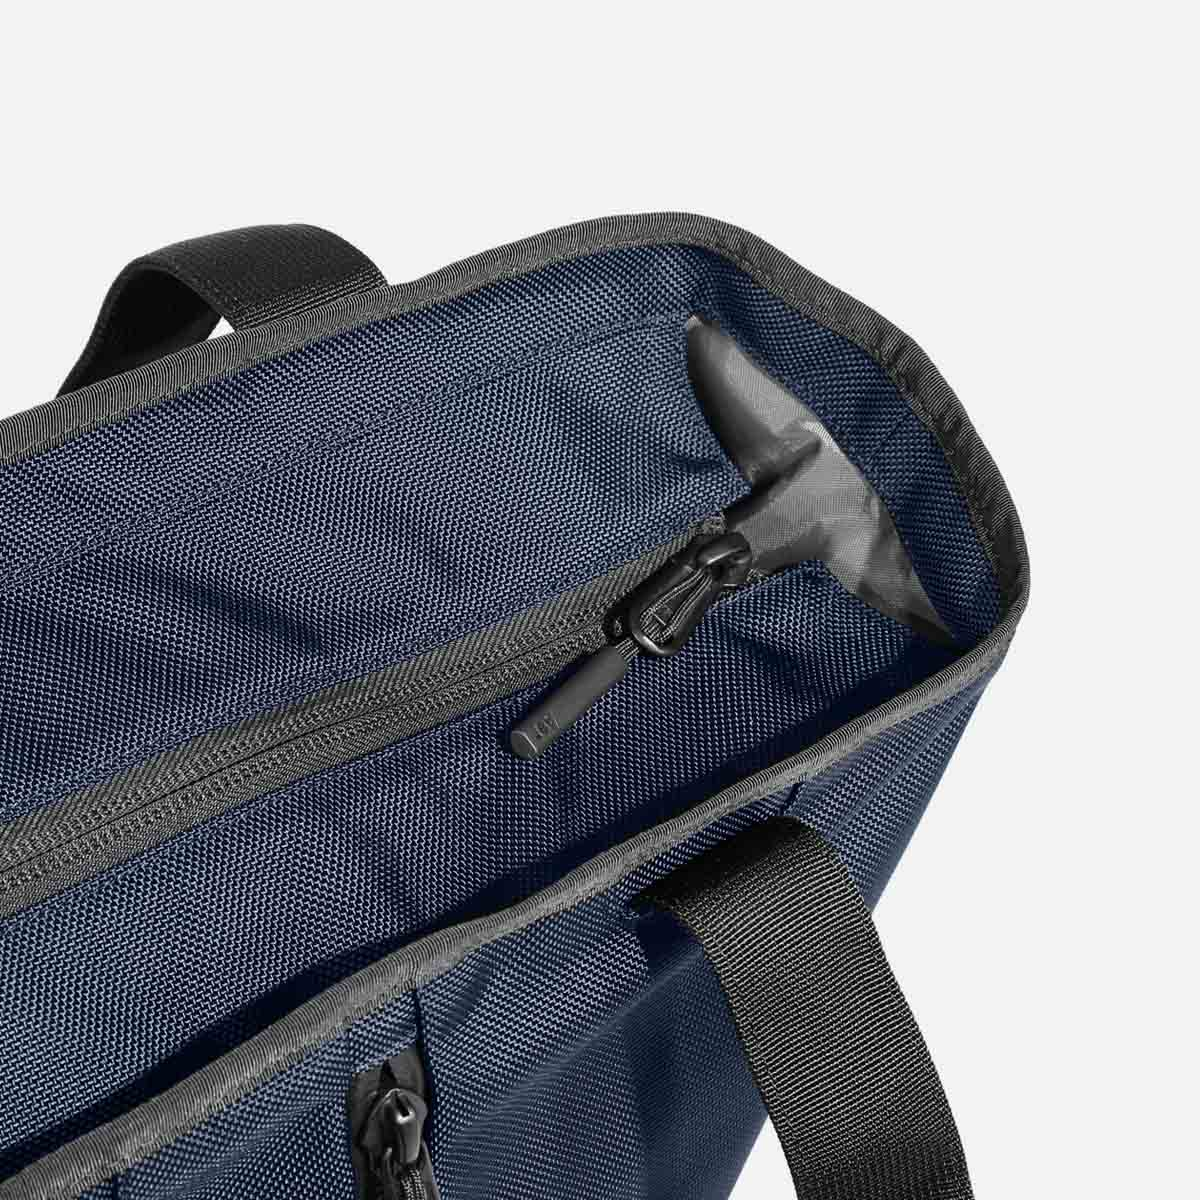 13008_gymtote_navy_maincompartment.jpg